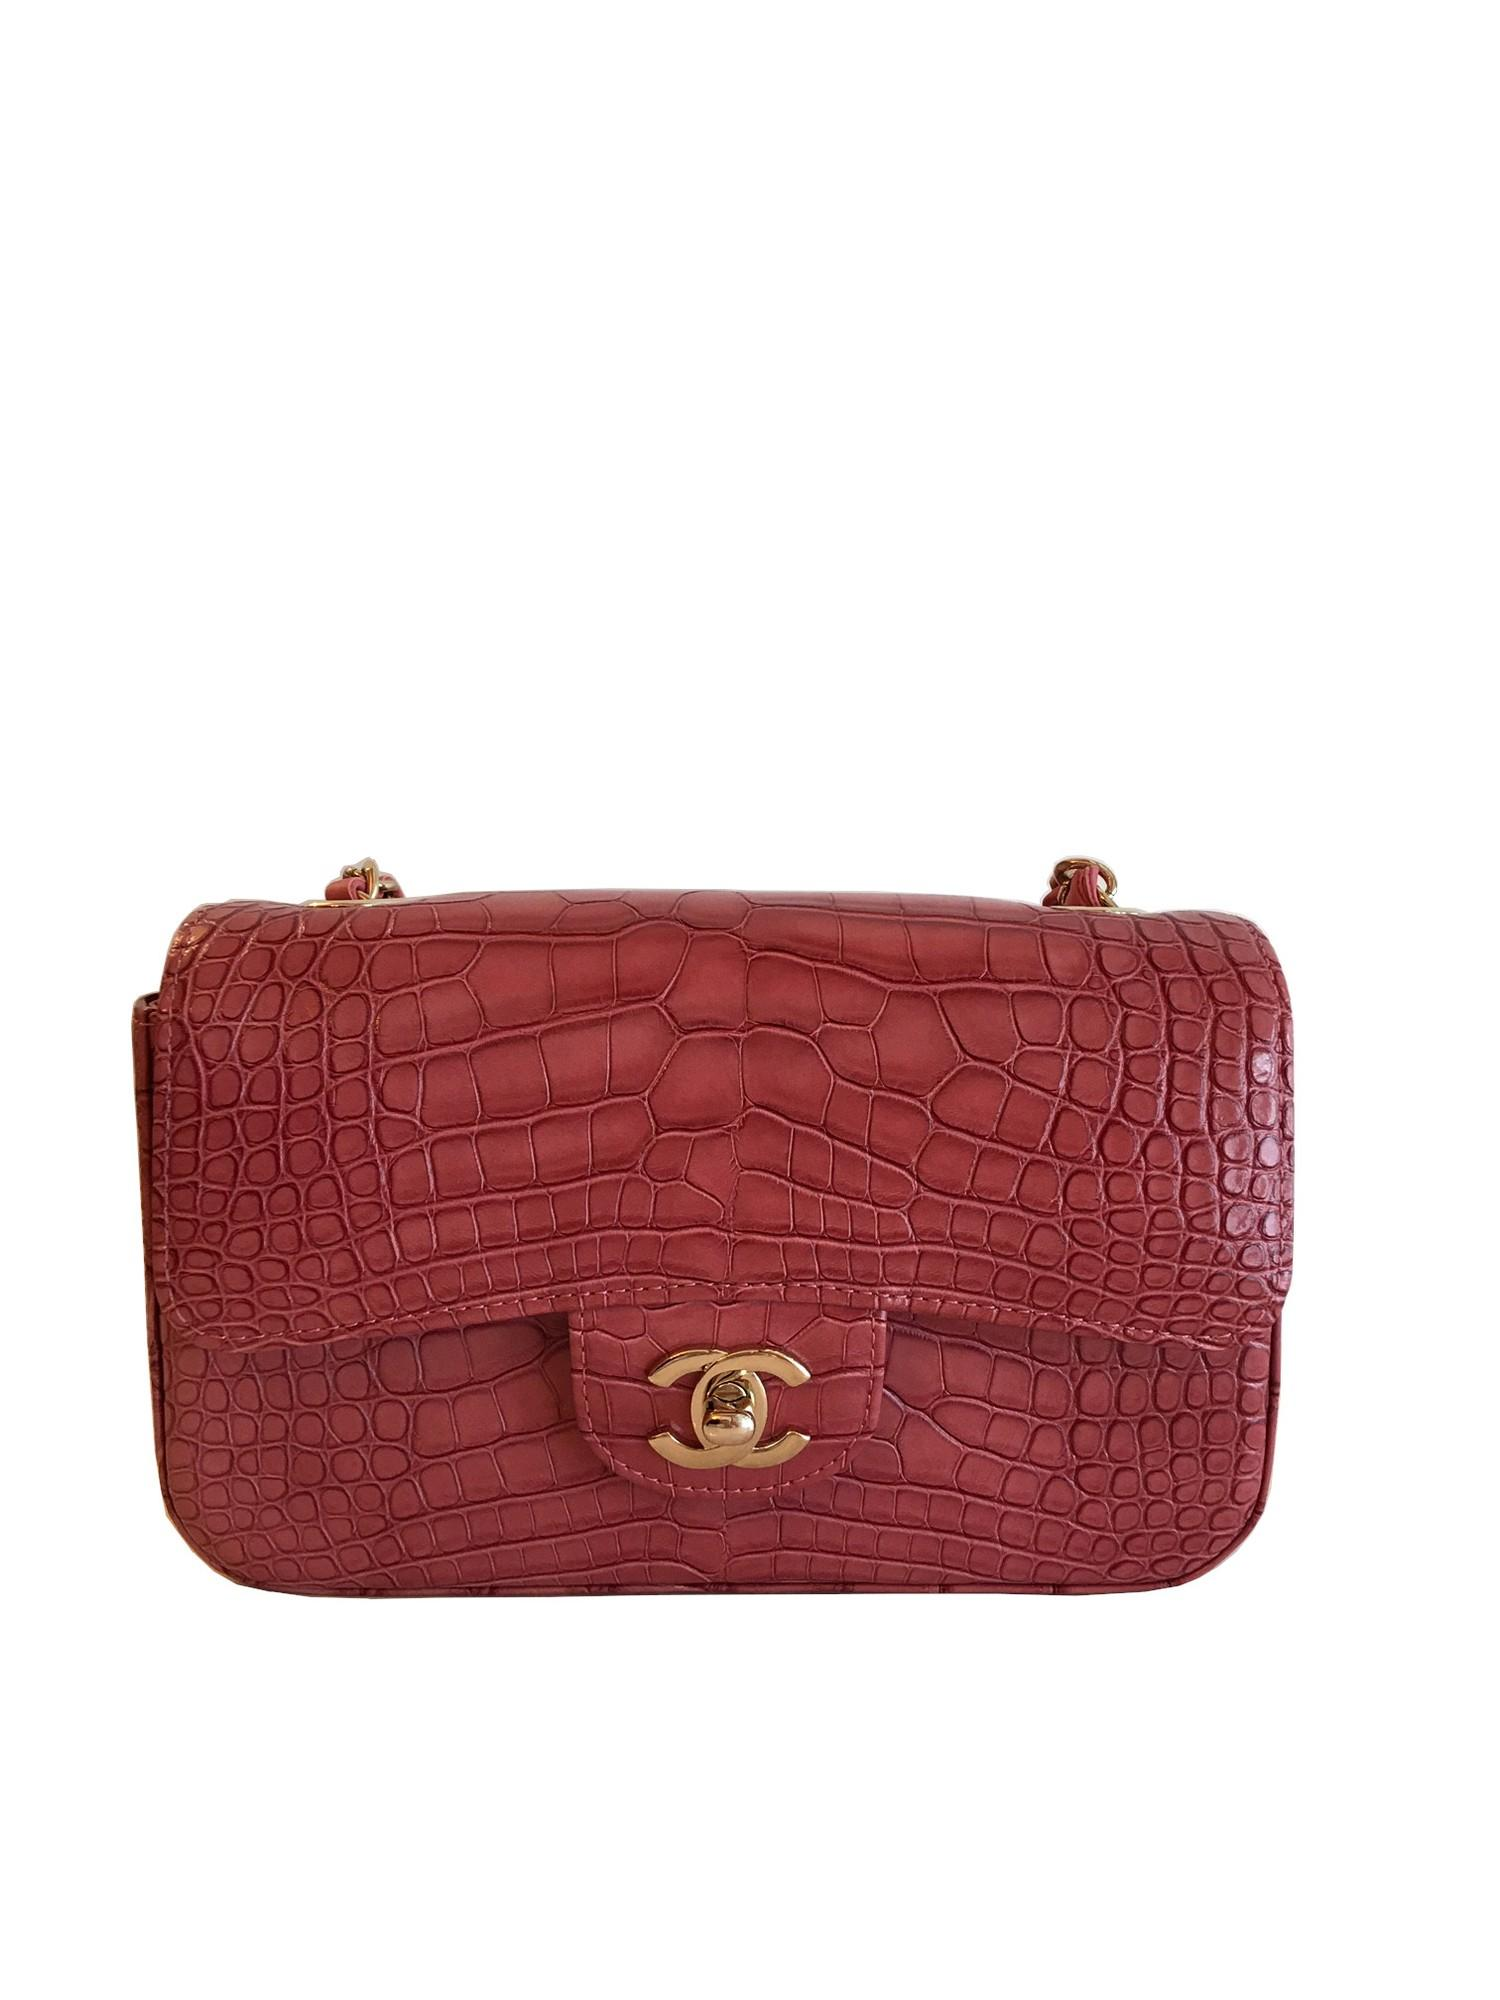 A Chanel Classic Flap in Dusky Pink Crocodile leather with Gold Hardware is instantly recognizable - Image 2 of 5